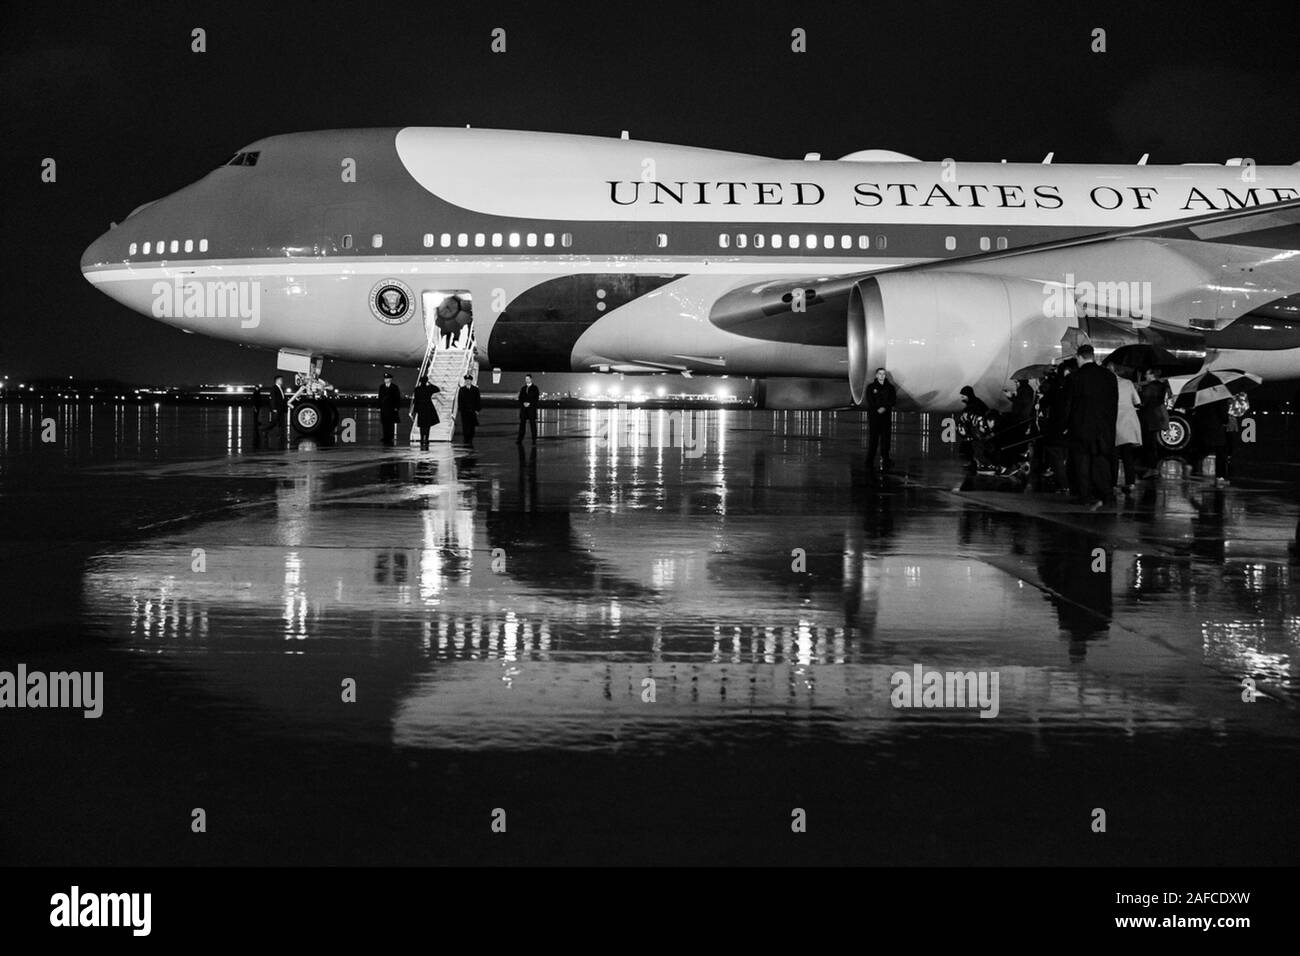 Washington, United States Of America. 10th Dec, 2019. President Donald J. Trump boards Air Force One at Joint Base Andrews, Md. Tuesday, Dec. 10, 2019, en route to Hersey, Pa. People: Credit: Storms Media Group/Alamy Live News Stock Photo